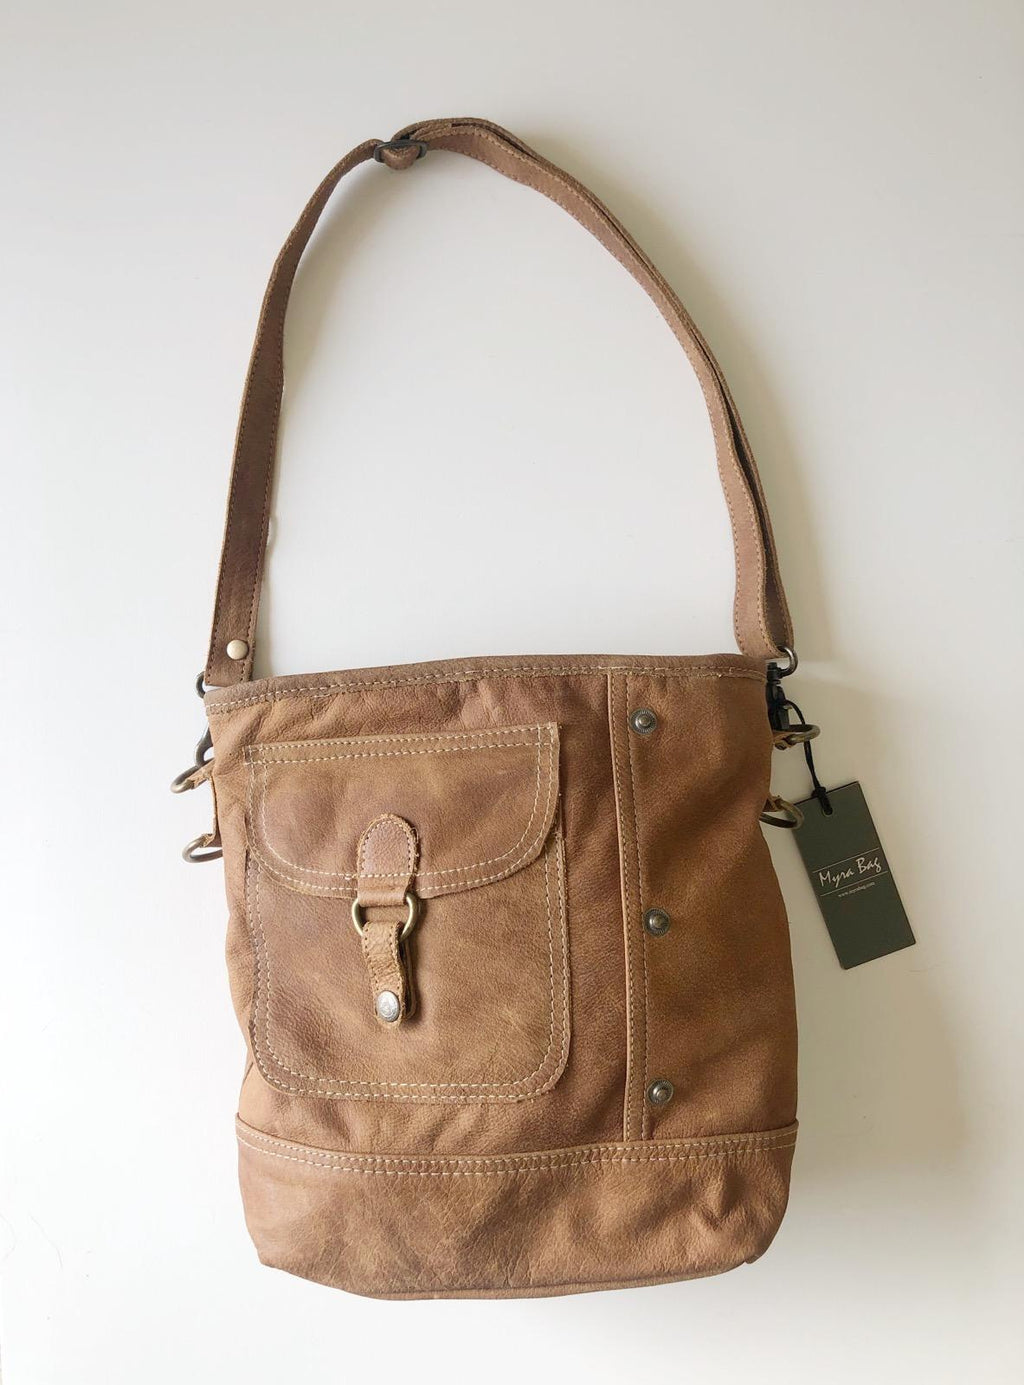 Myra Bags Vintage Barn Chicks Find here online price details of companies selling tamper proof courier bags, security bags in bengaluru, karnataka.get info of suppliers, manufacturers, exporters, traders of chickpet, bengaluru no. myra bags vintage barn chicks